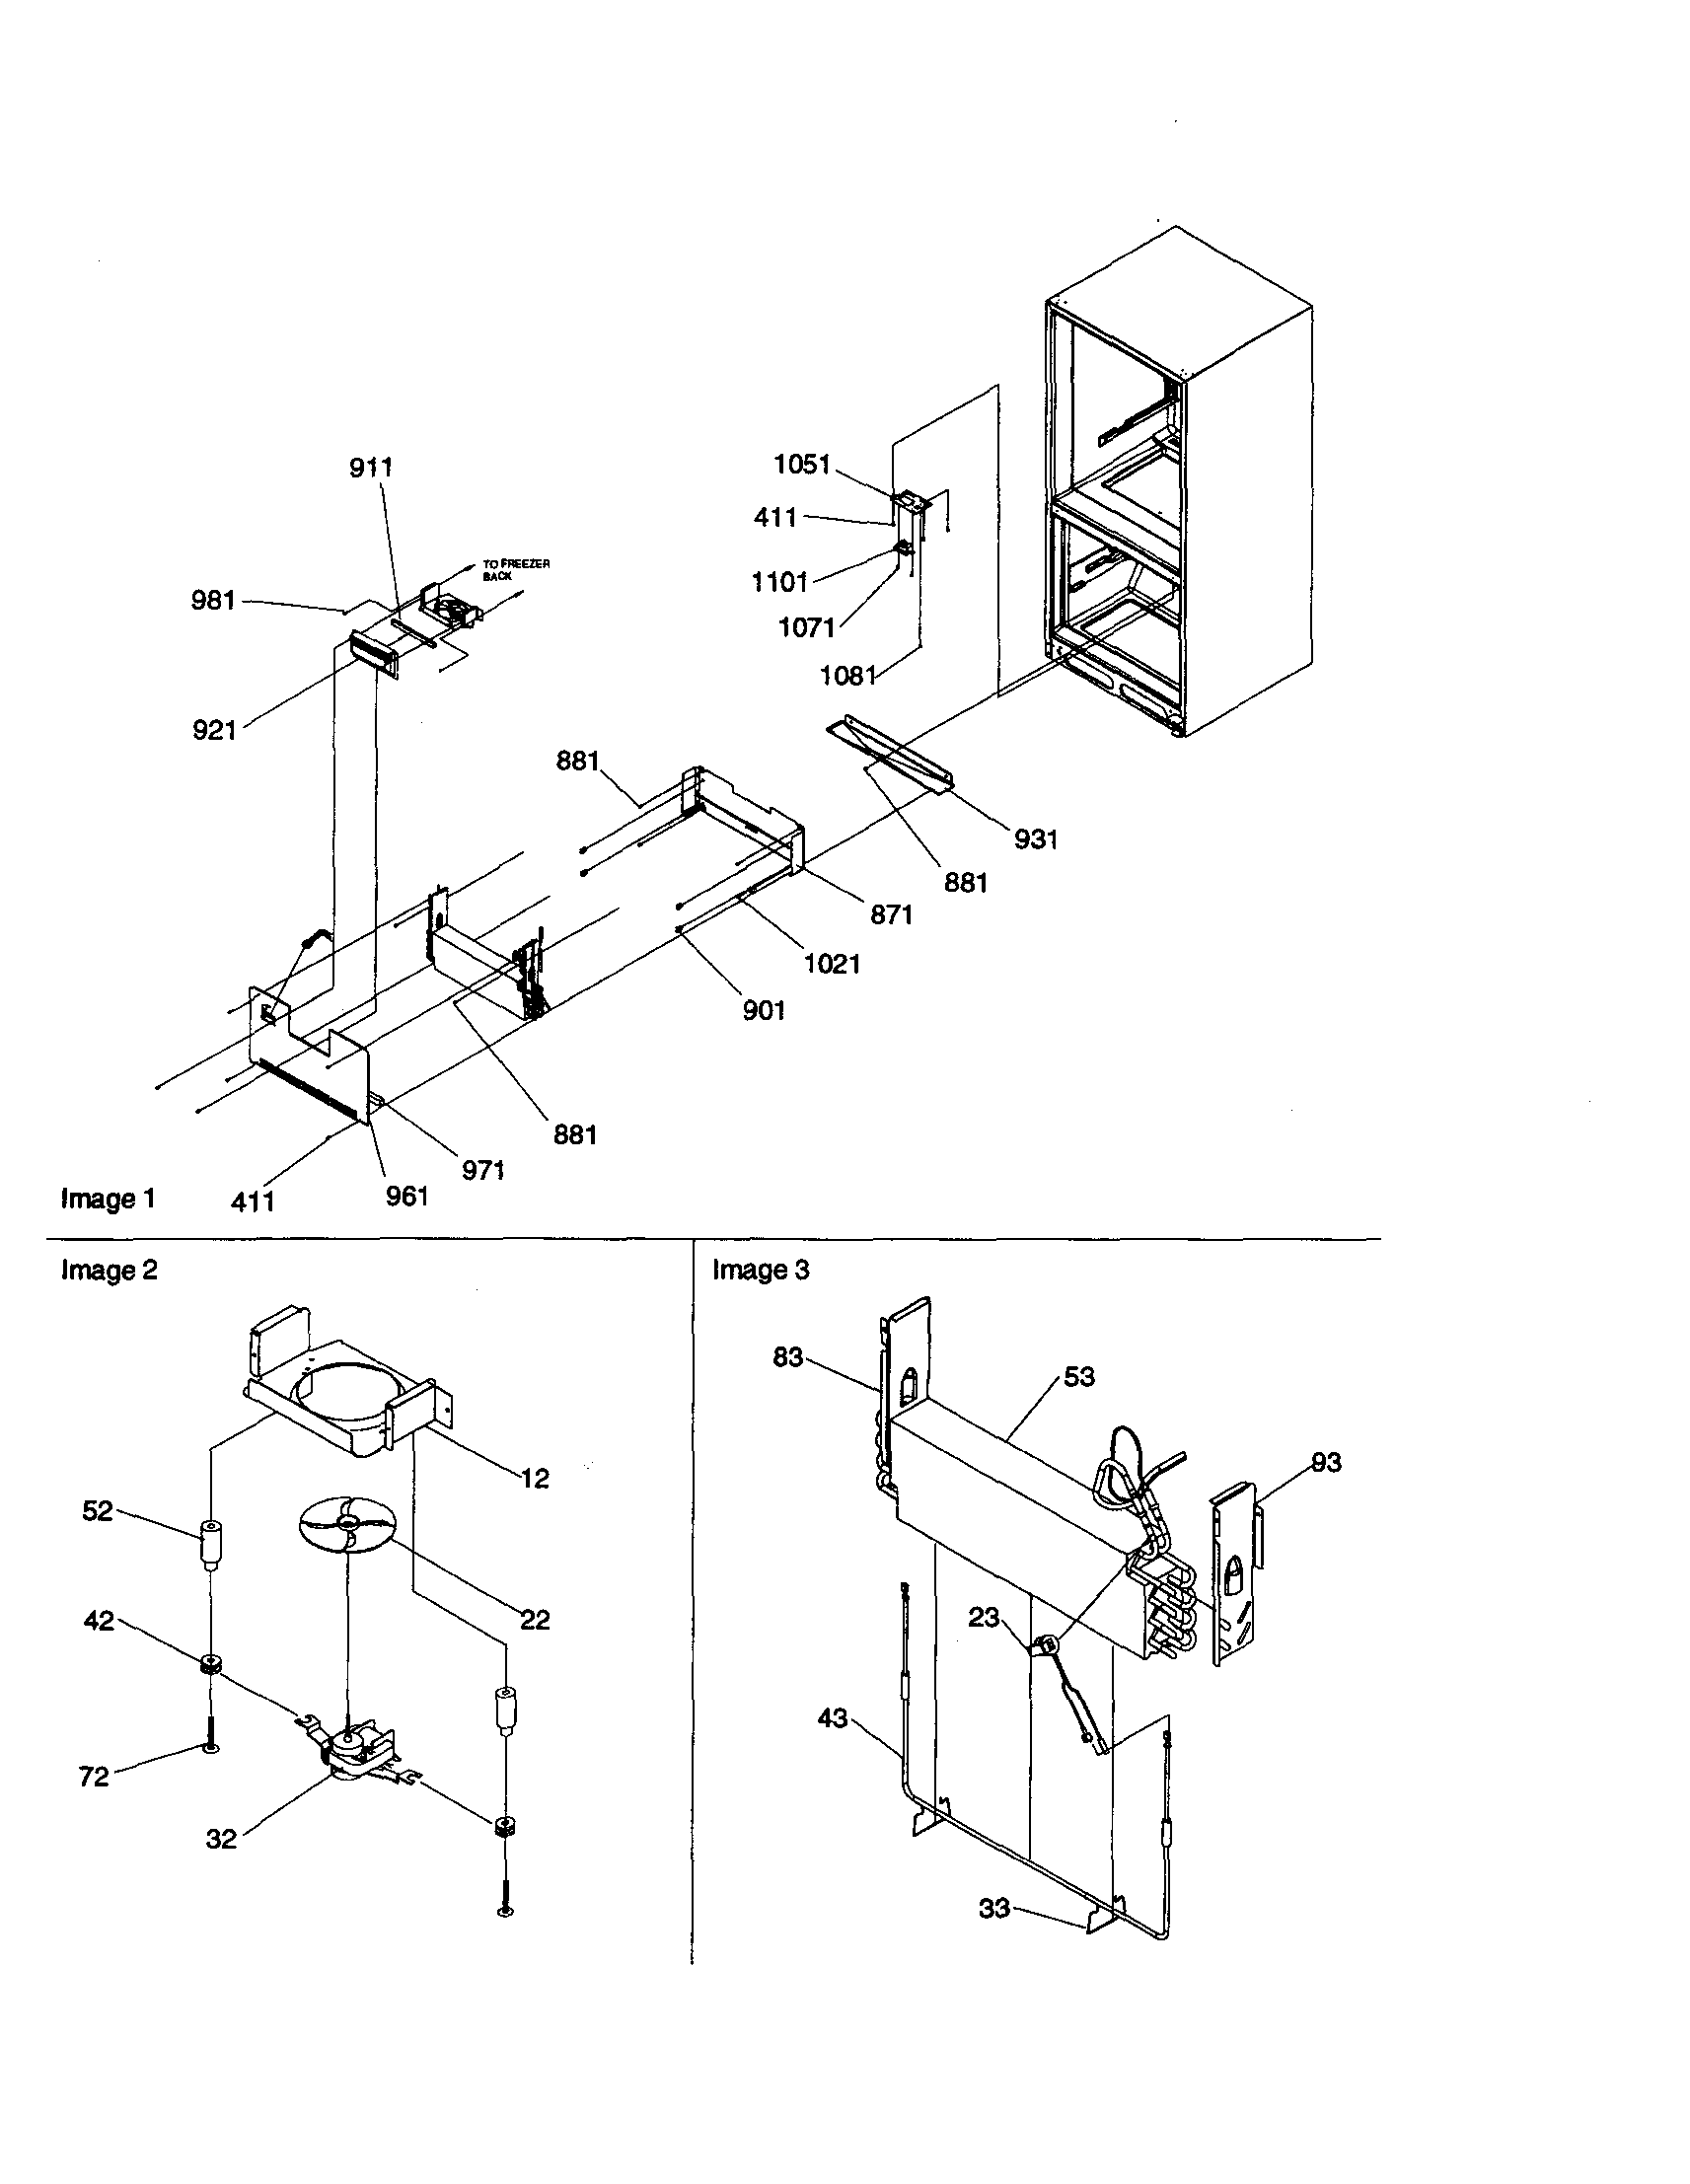 EVAPORATOR/FREEZER CONTROL ASSEMBLY Diagram & Parts List